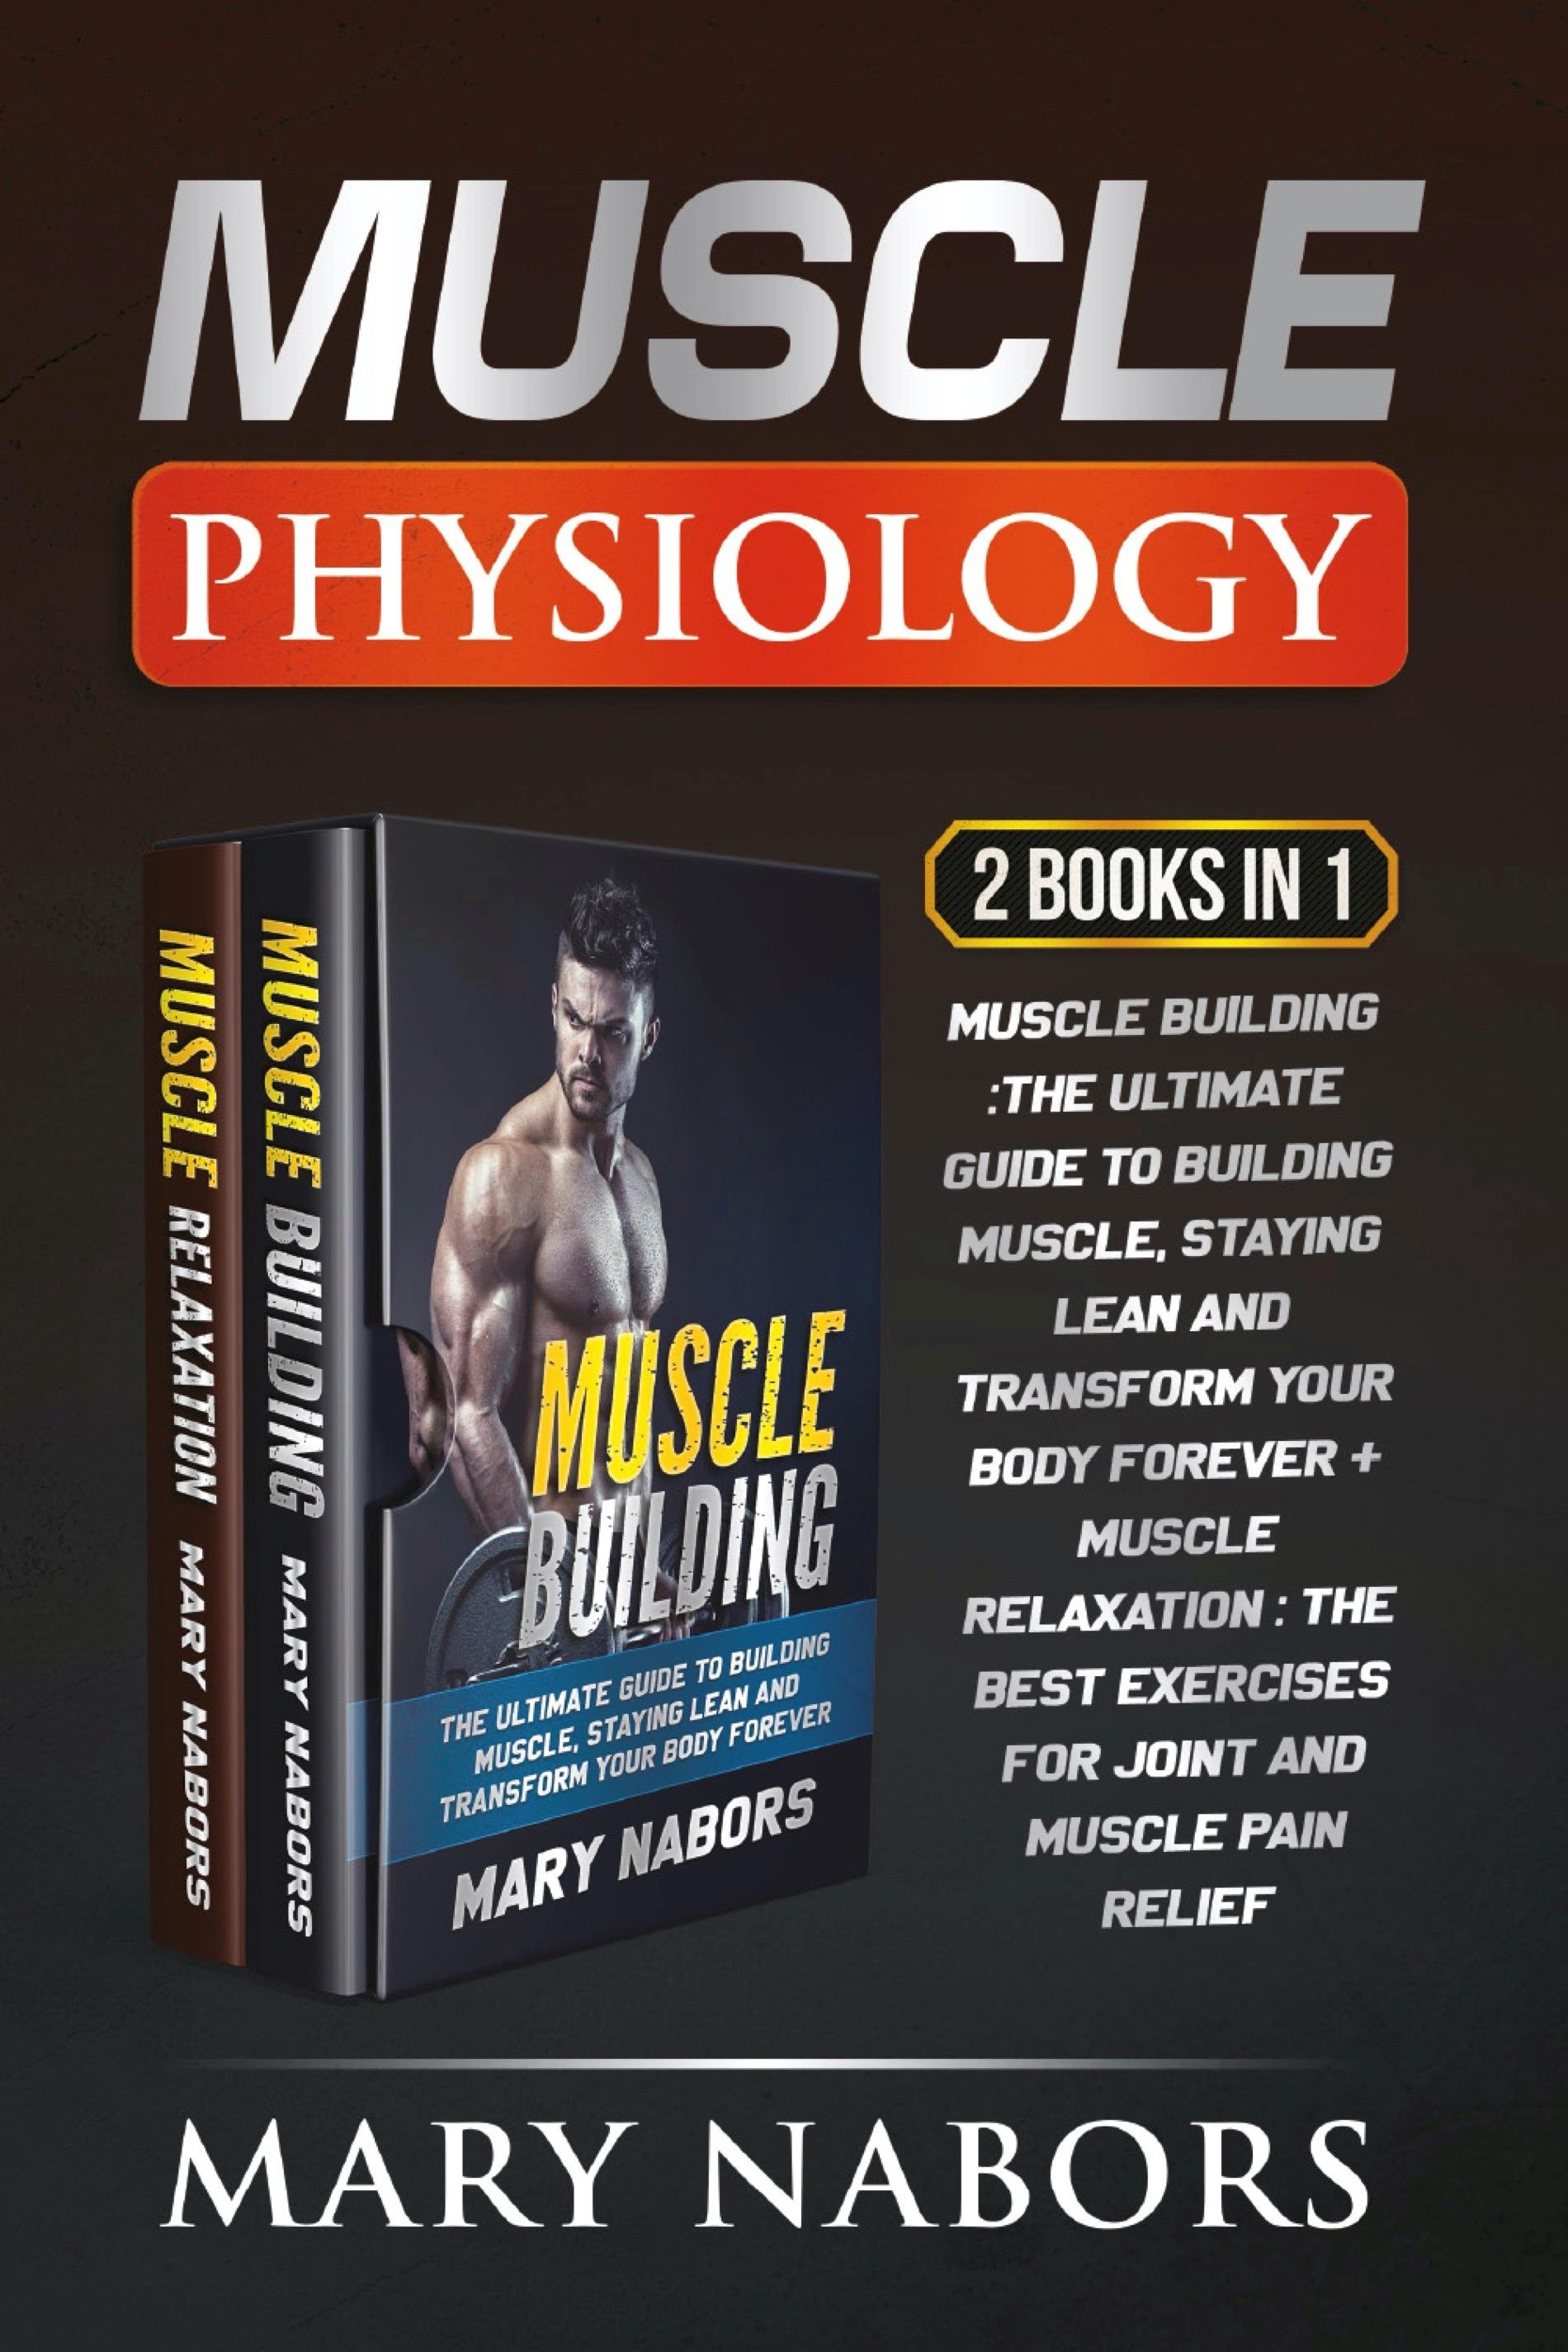 Muscle Physiology (2 Books in 1). Muscle Building :The Ultimate Guide to Building Muscle, Staying Lean and Transform Your Body Forever + Muscle Relaxation : Exercises for Joint and Muscle Pain Relief